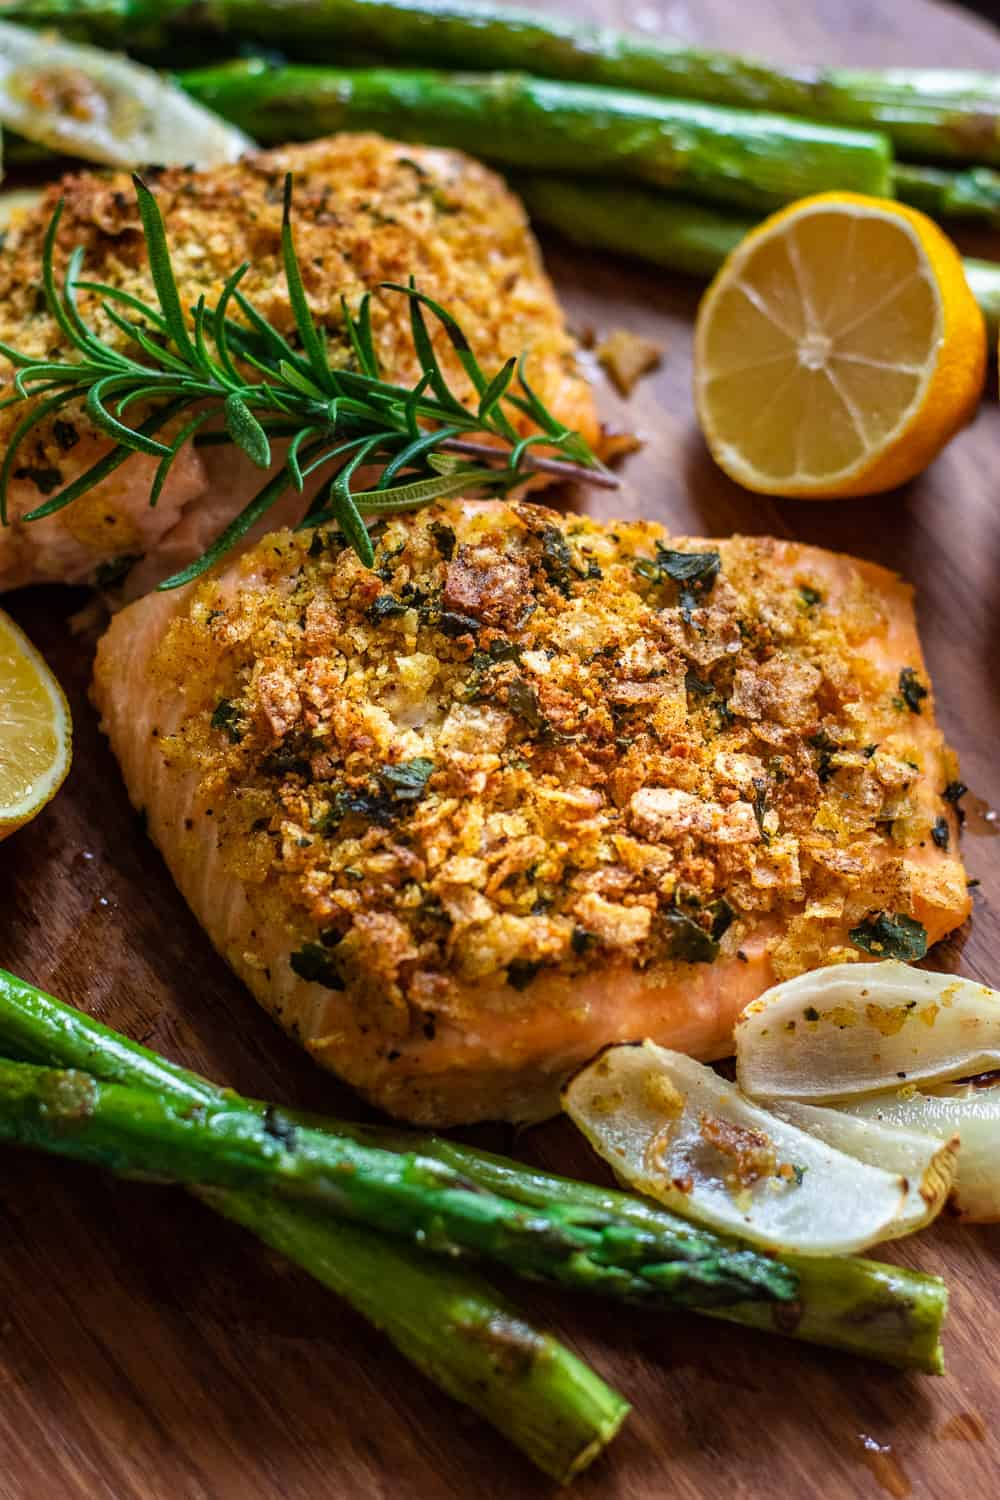 Best One Pan Baked Salmon Recipe with Herb Crust (Gluten Free) | One Pan Dinners | Quick Dinner Recipes | Easy Dinner Recipes | Healthy Dinner Recipes | Easy Salmon Dinner Recipes | Baked Salmon Recipe | Gluten Free Dinner Recipe || The Butter Half #glutenfree #easydinner #thebutterhalf